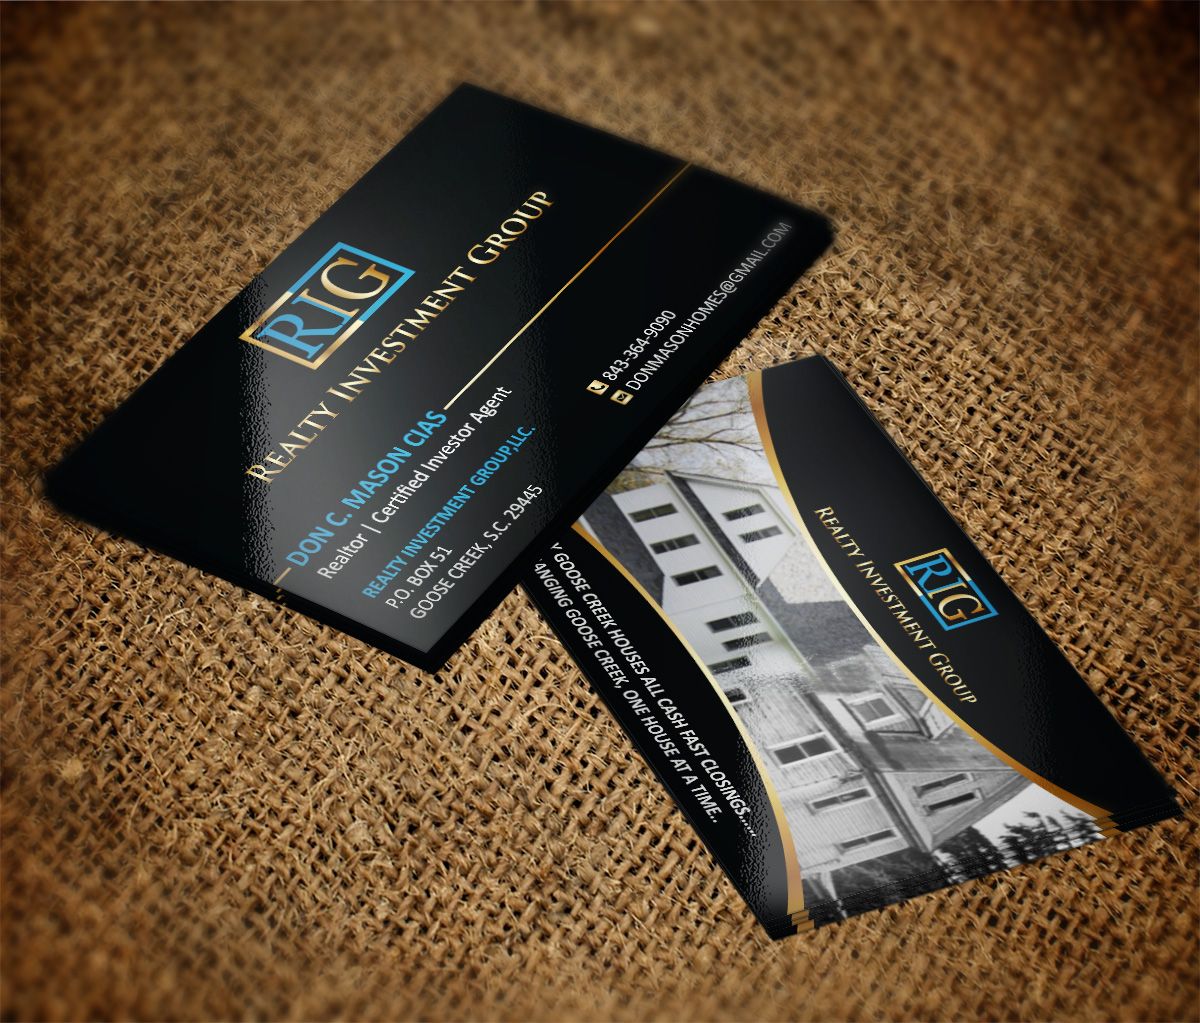 Real estate investing business cards idealstalist real estate investing business cards reheart Choice Image